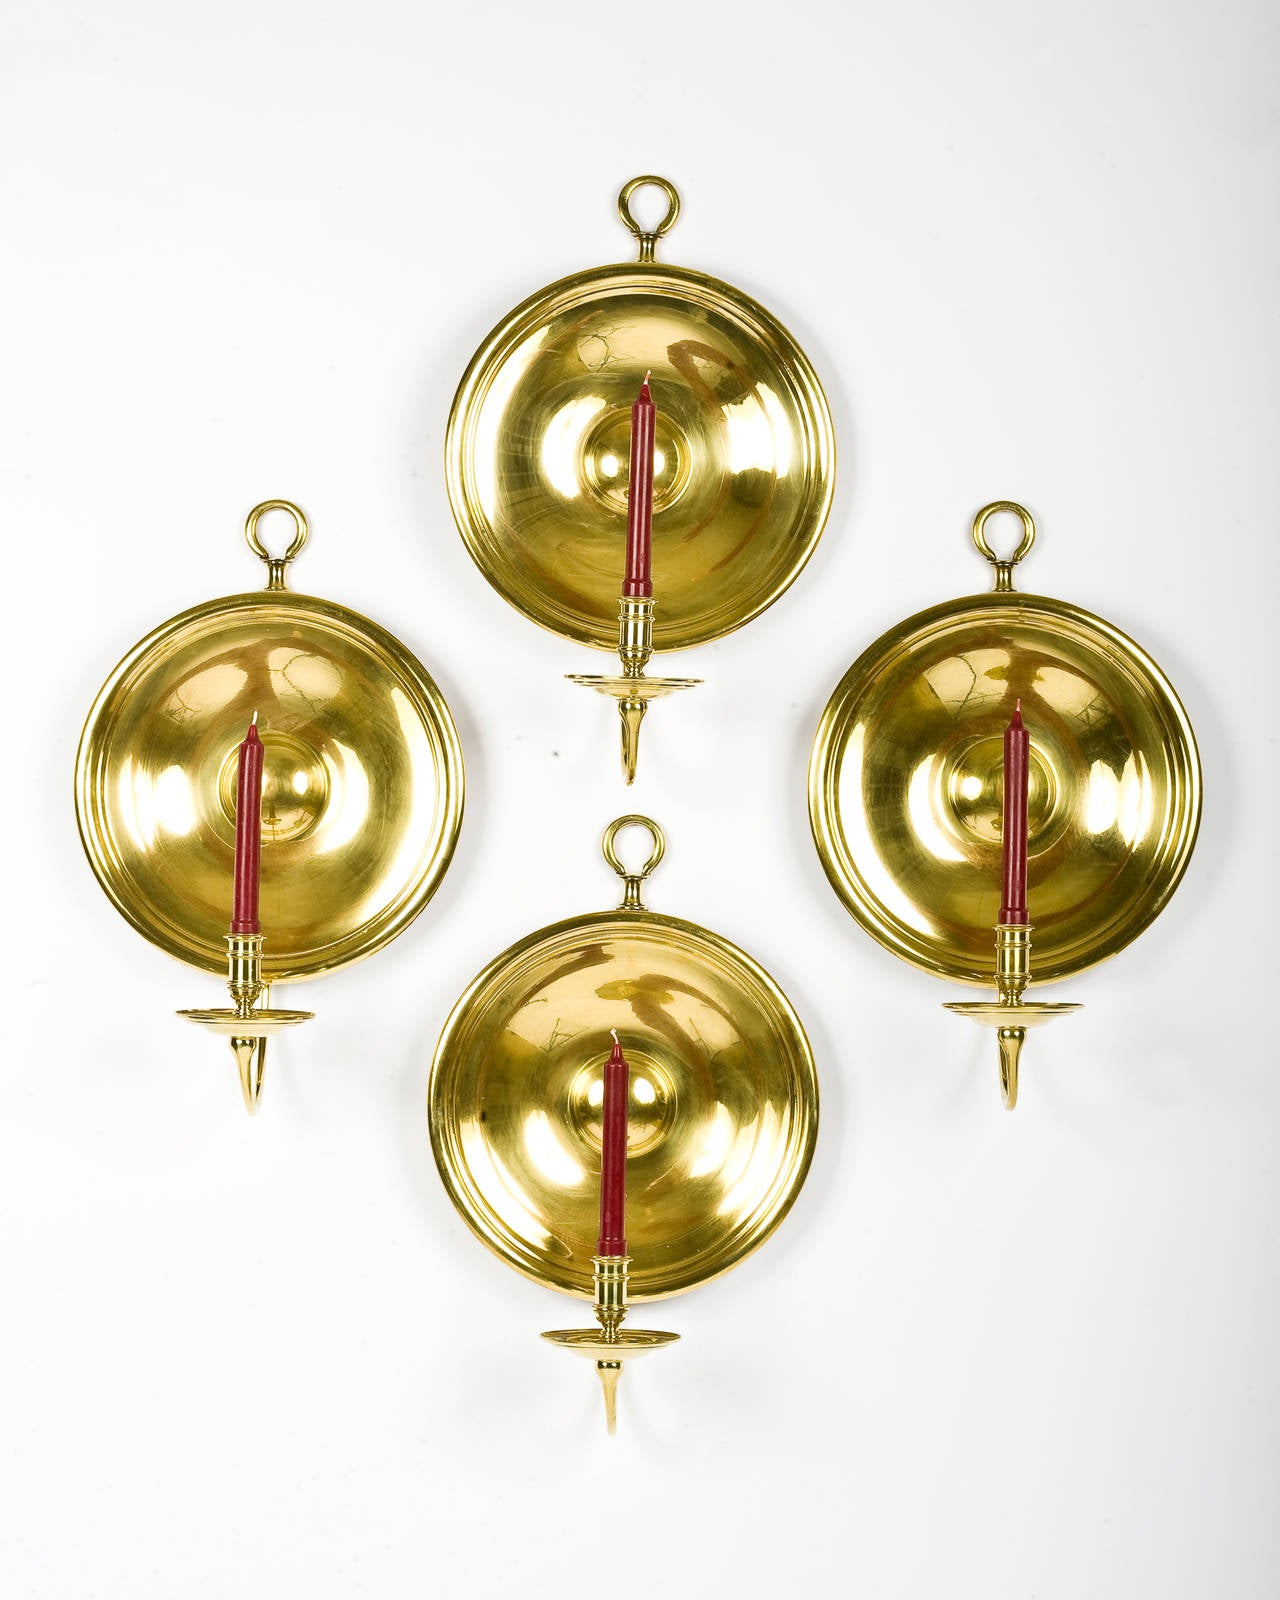 Pair of Brass Candle Sconces For Sale at 1stdibs